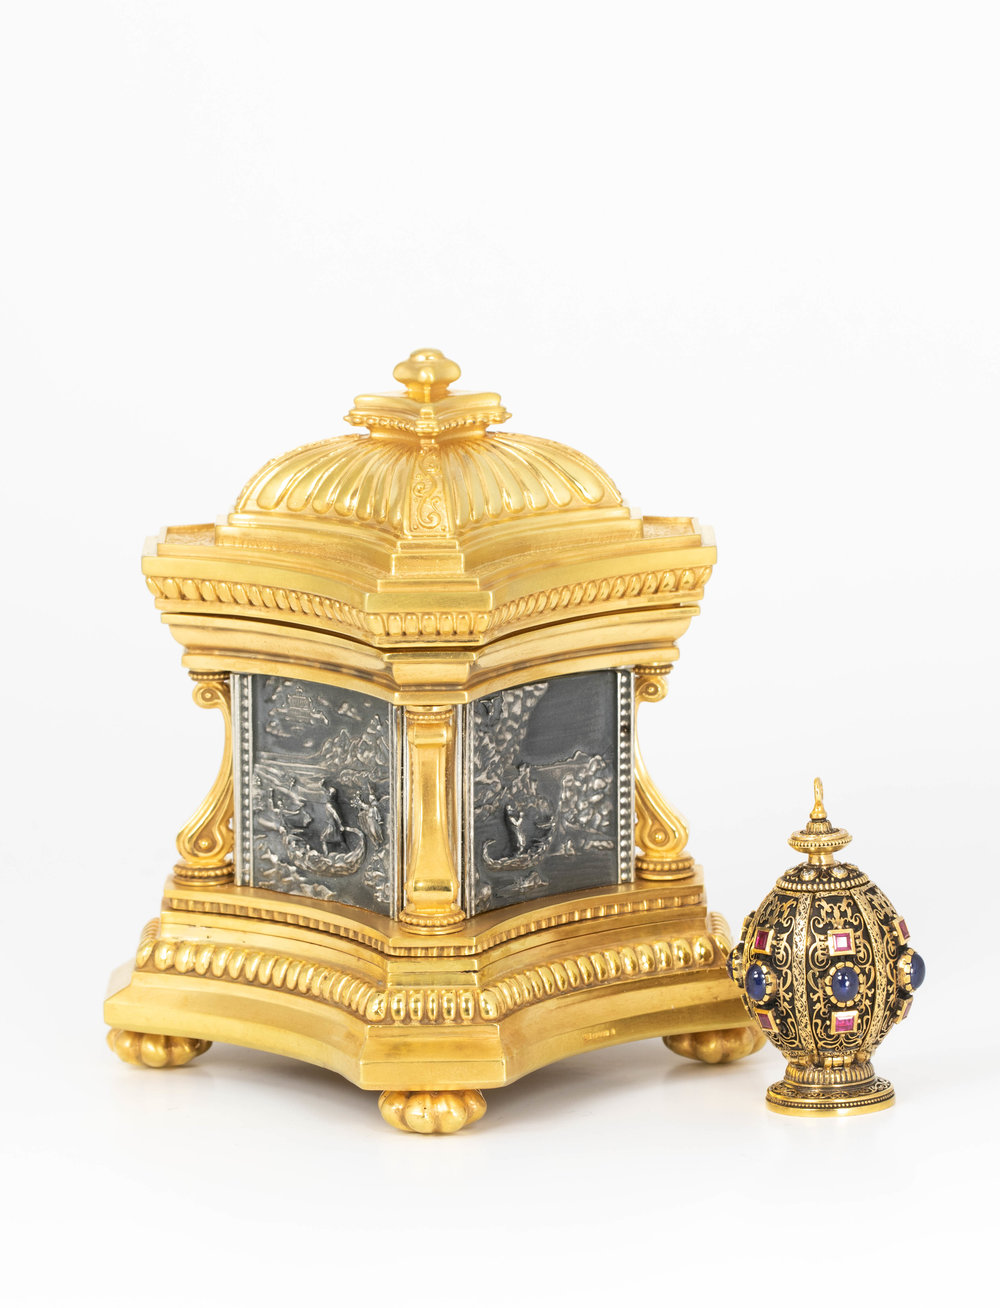 """Gold pomander set with rubies, sapphires and diamonds together with a silver and silver gilt """"Journey of Life casket"""". Both made in Chichester, England."""